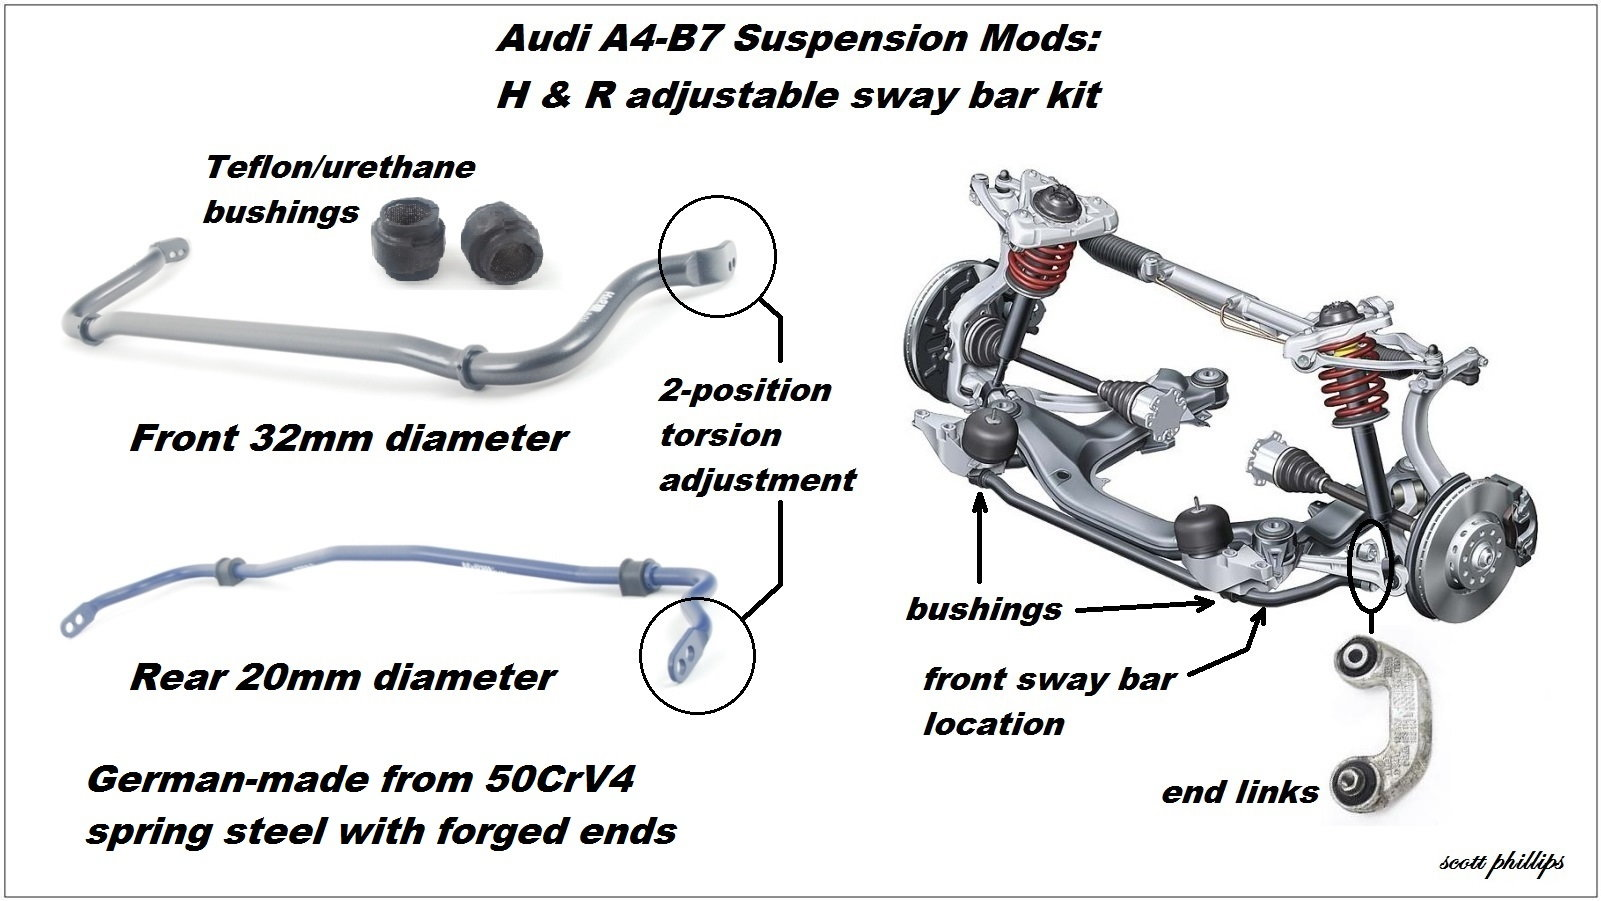 Audi A4 B7 Suspension Modifications